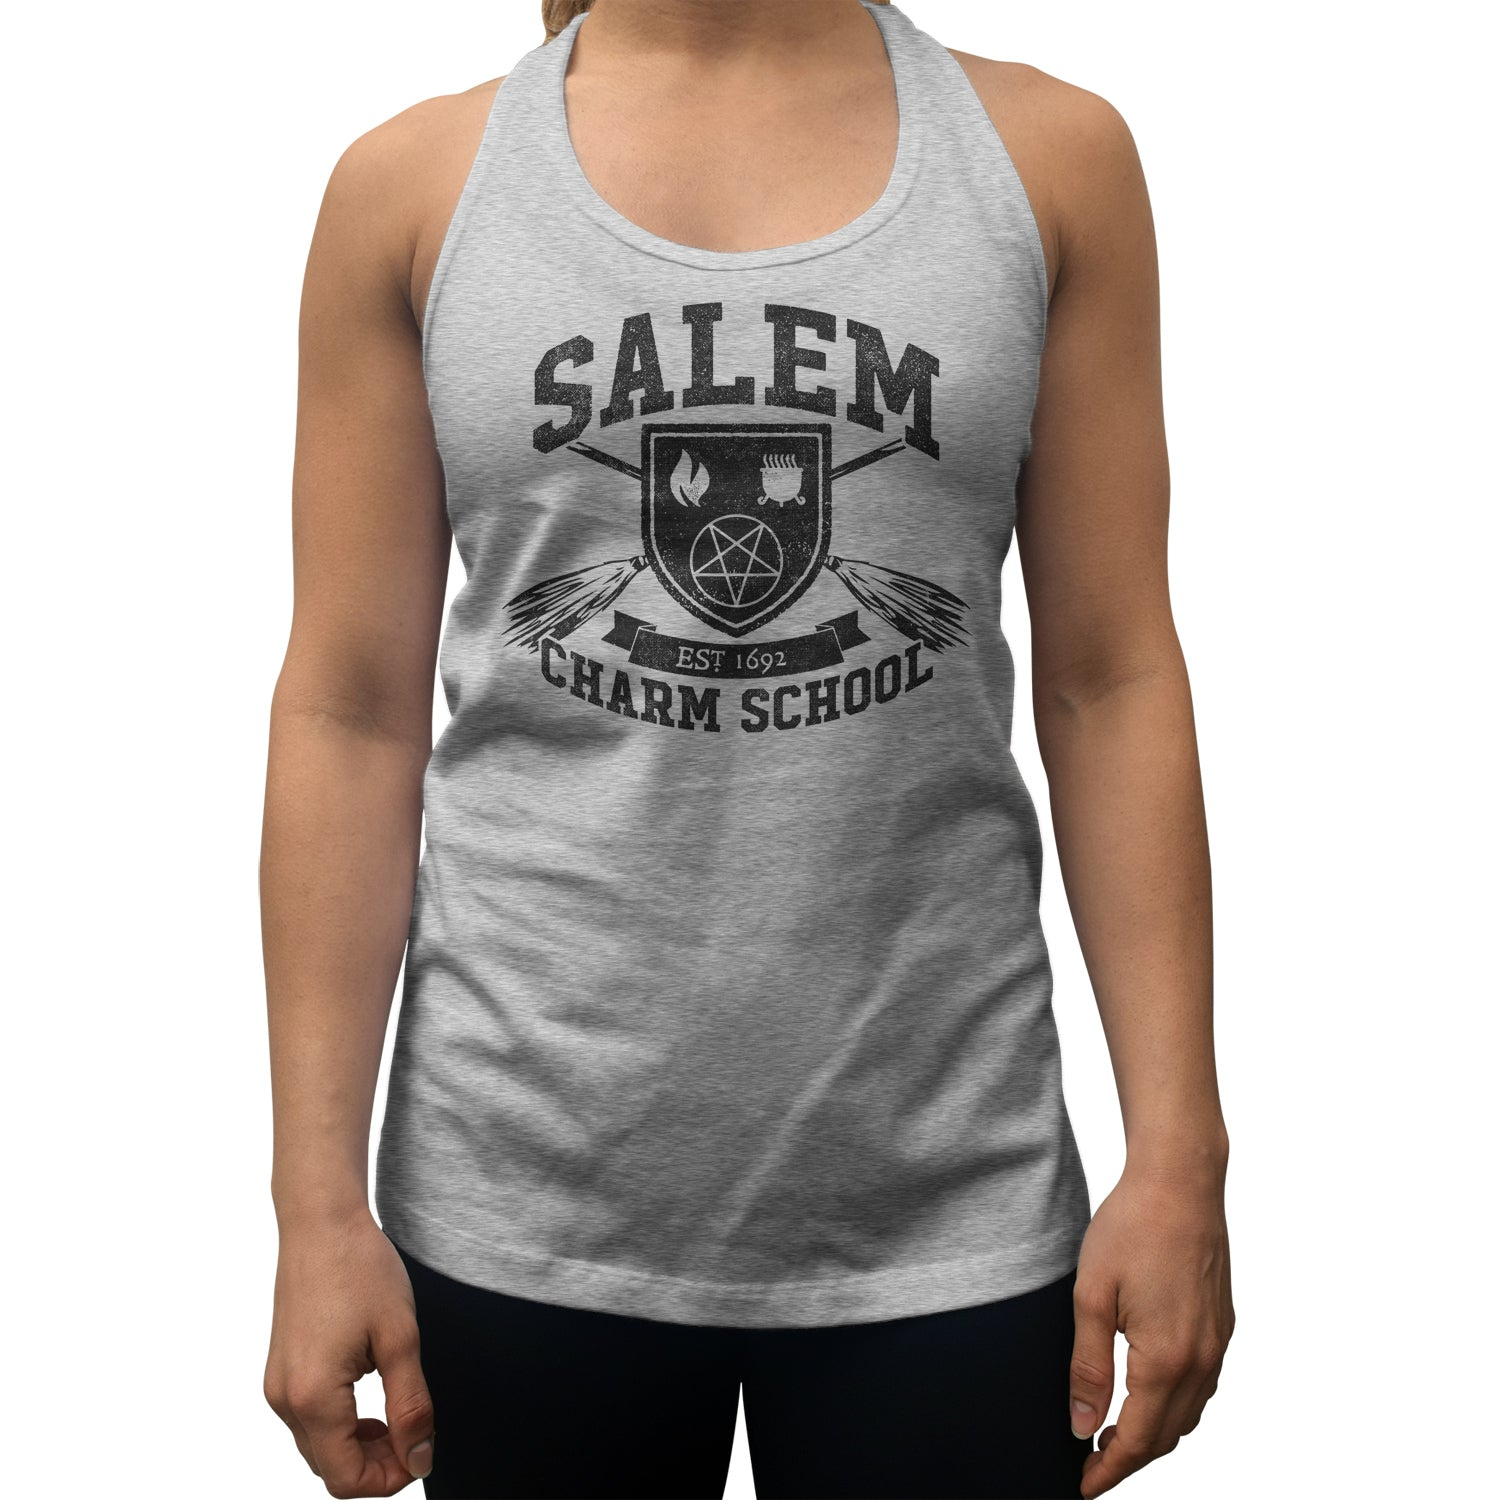 Women's Salem Charm School Racerback Tank Top